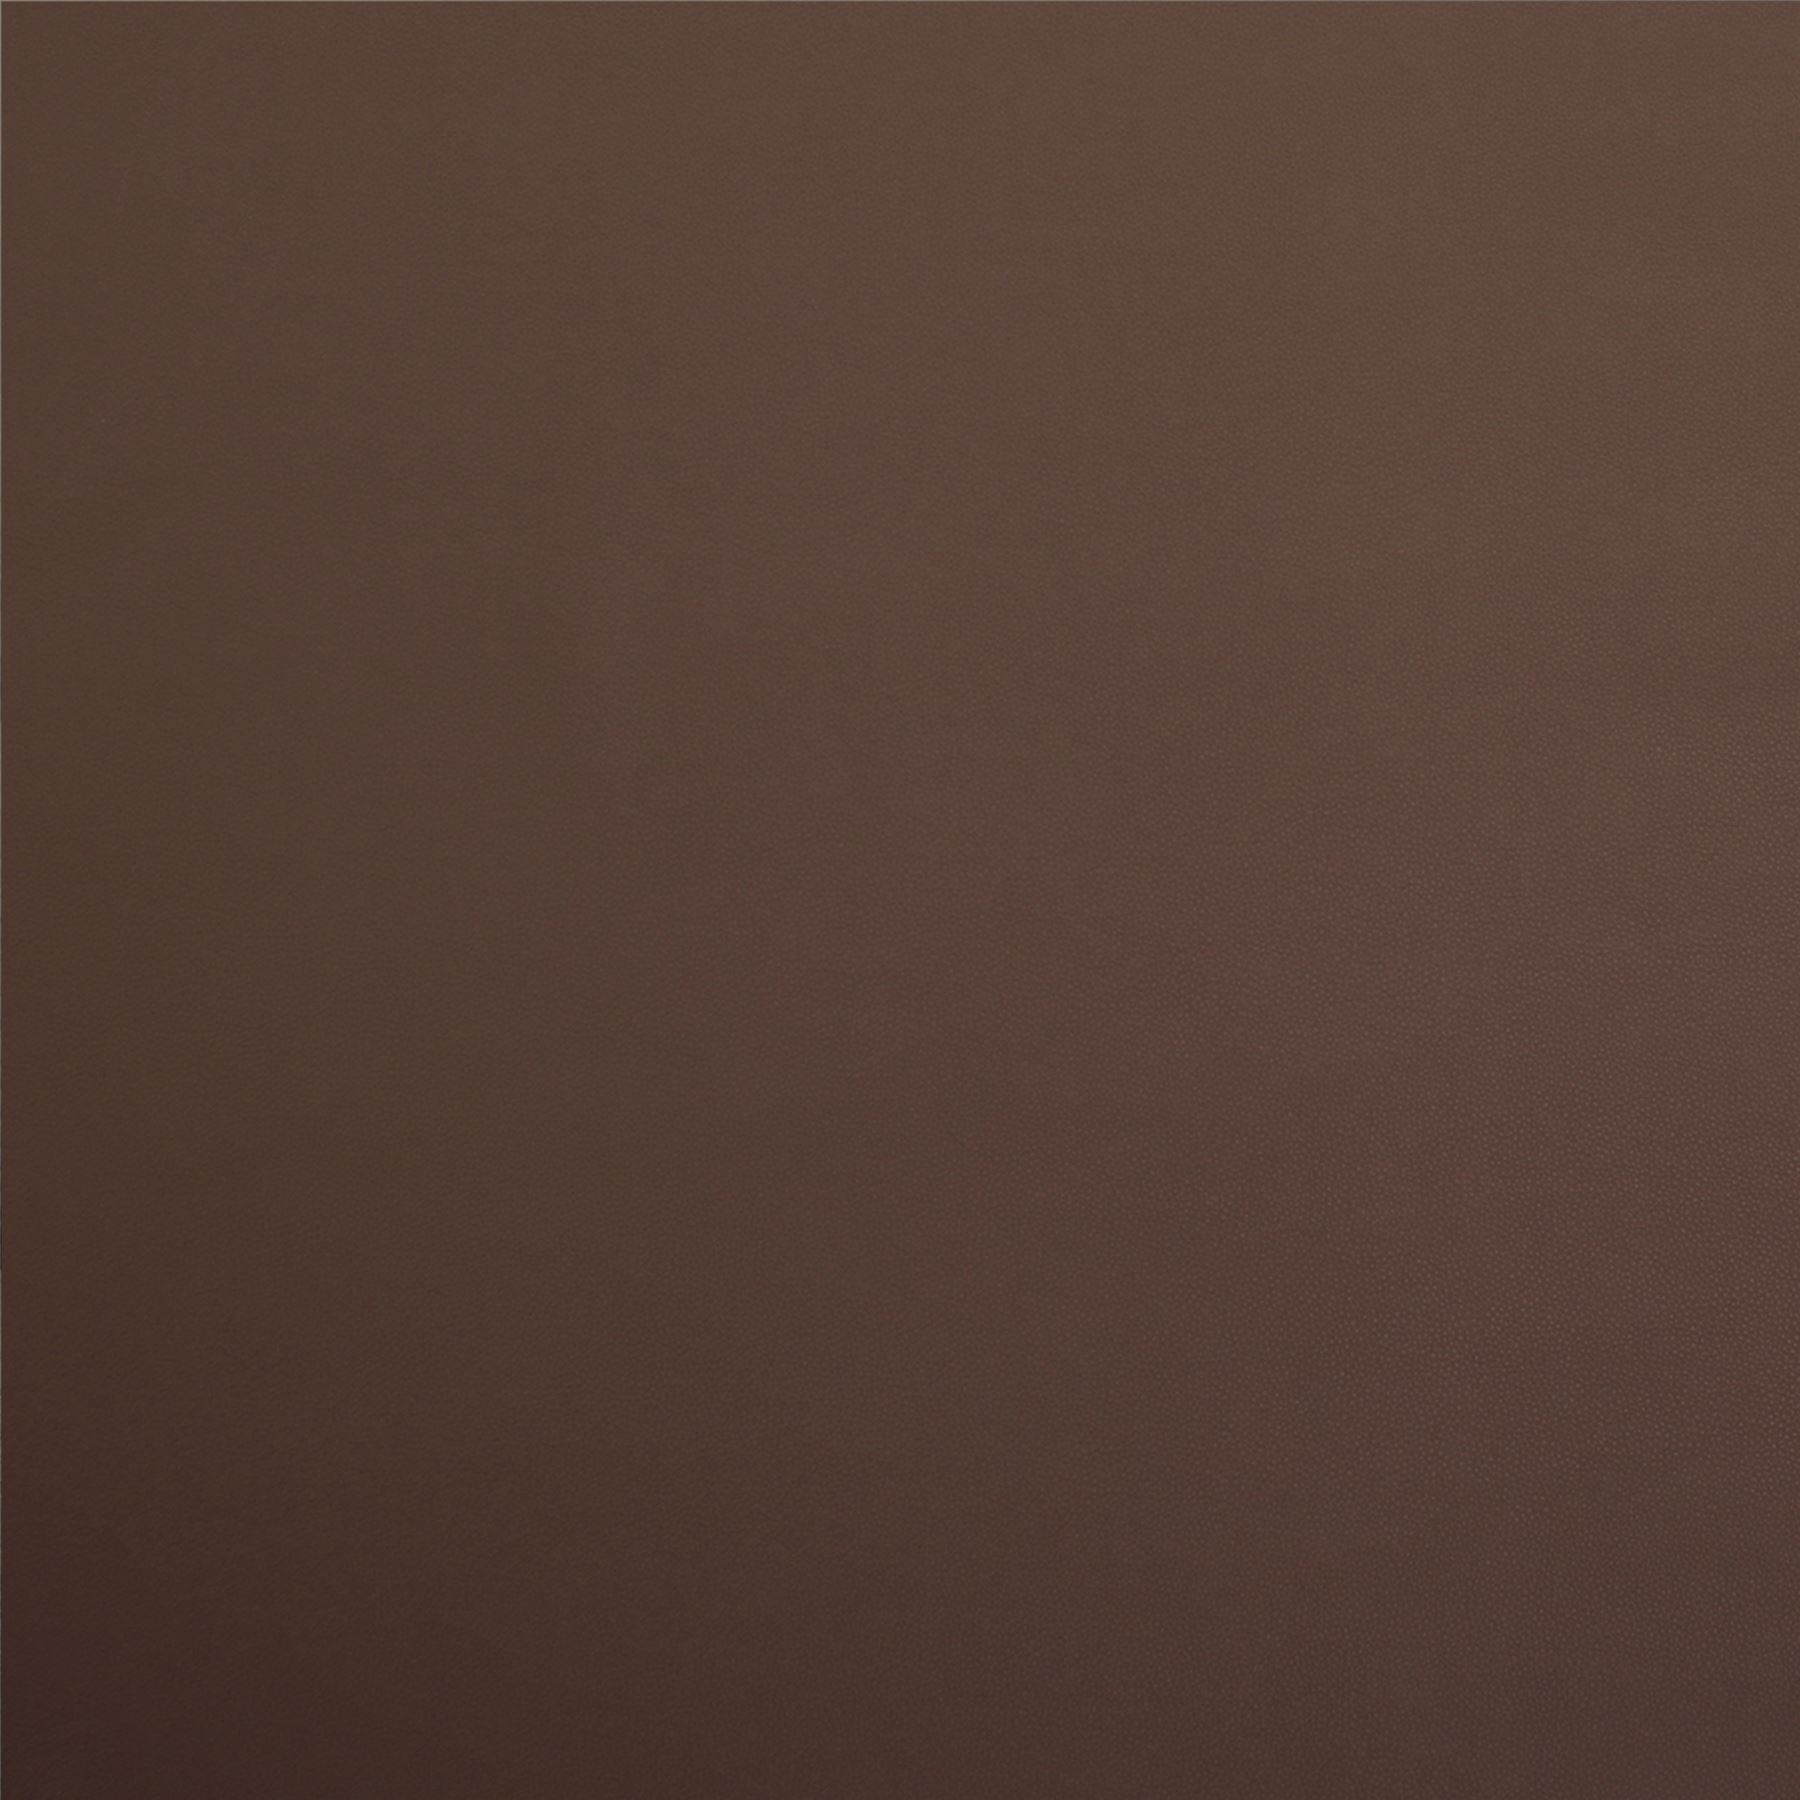 Nova-Faux-Leatherette-Artificial-Leather-Heavy-Grain-Upholstery-Vehicle-Fabric thumbnail 24